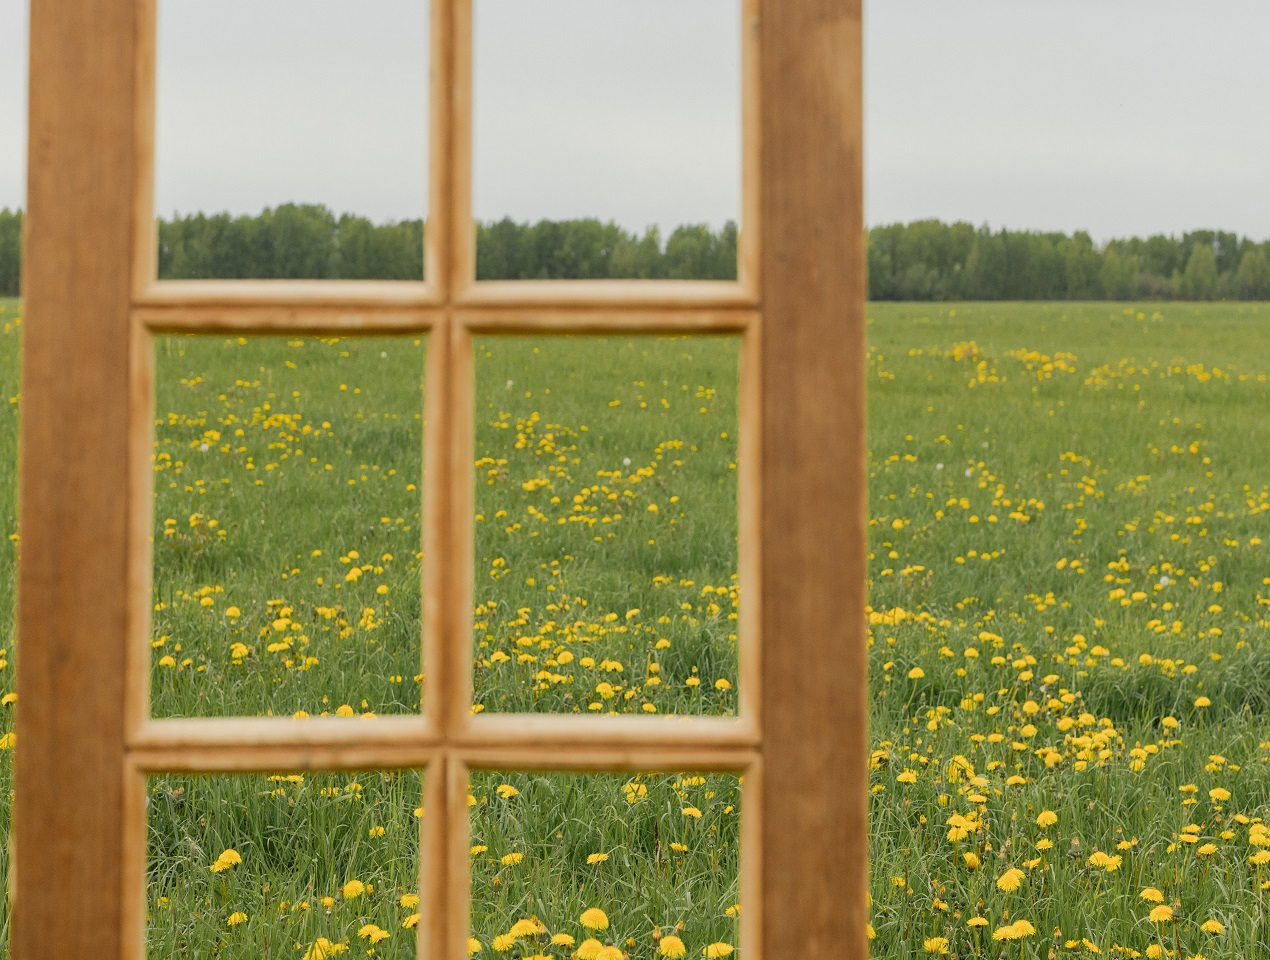 Brown Wooden Framed Glass Window with a meadow in the background. Image by Ron Lach on Pexels.